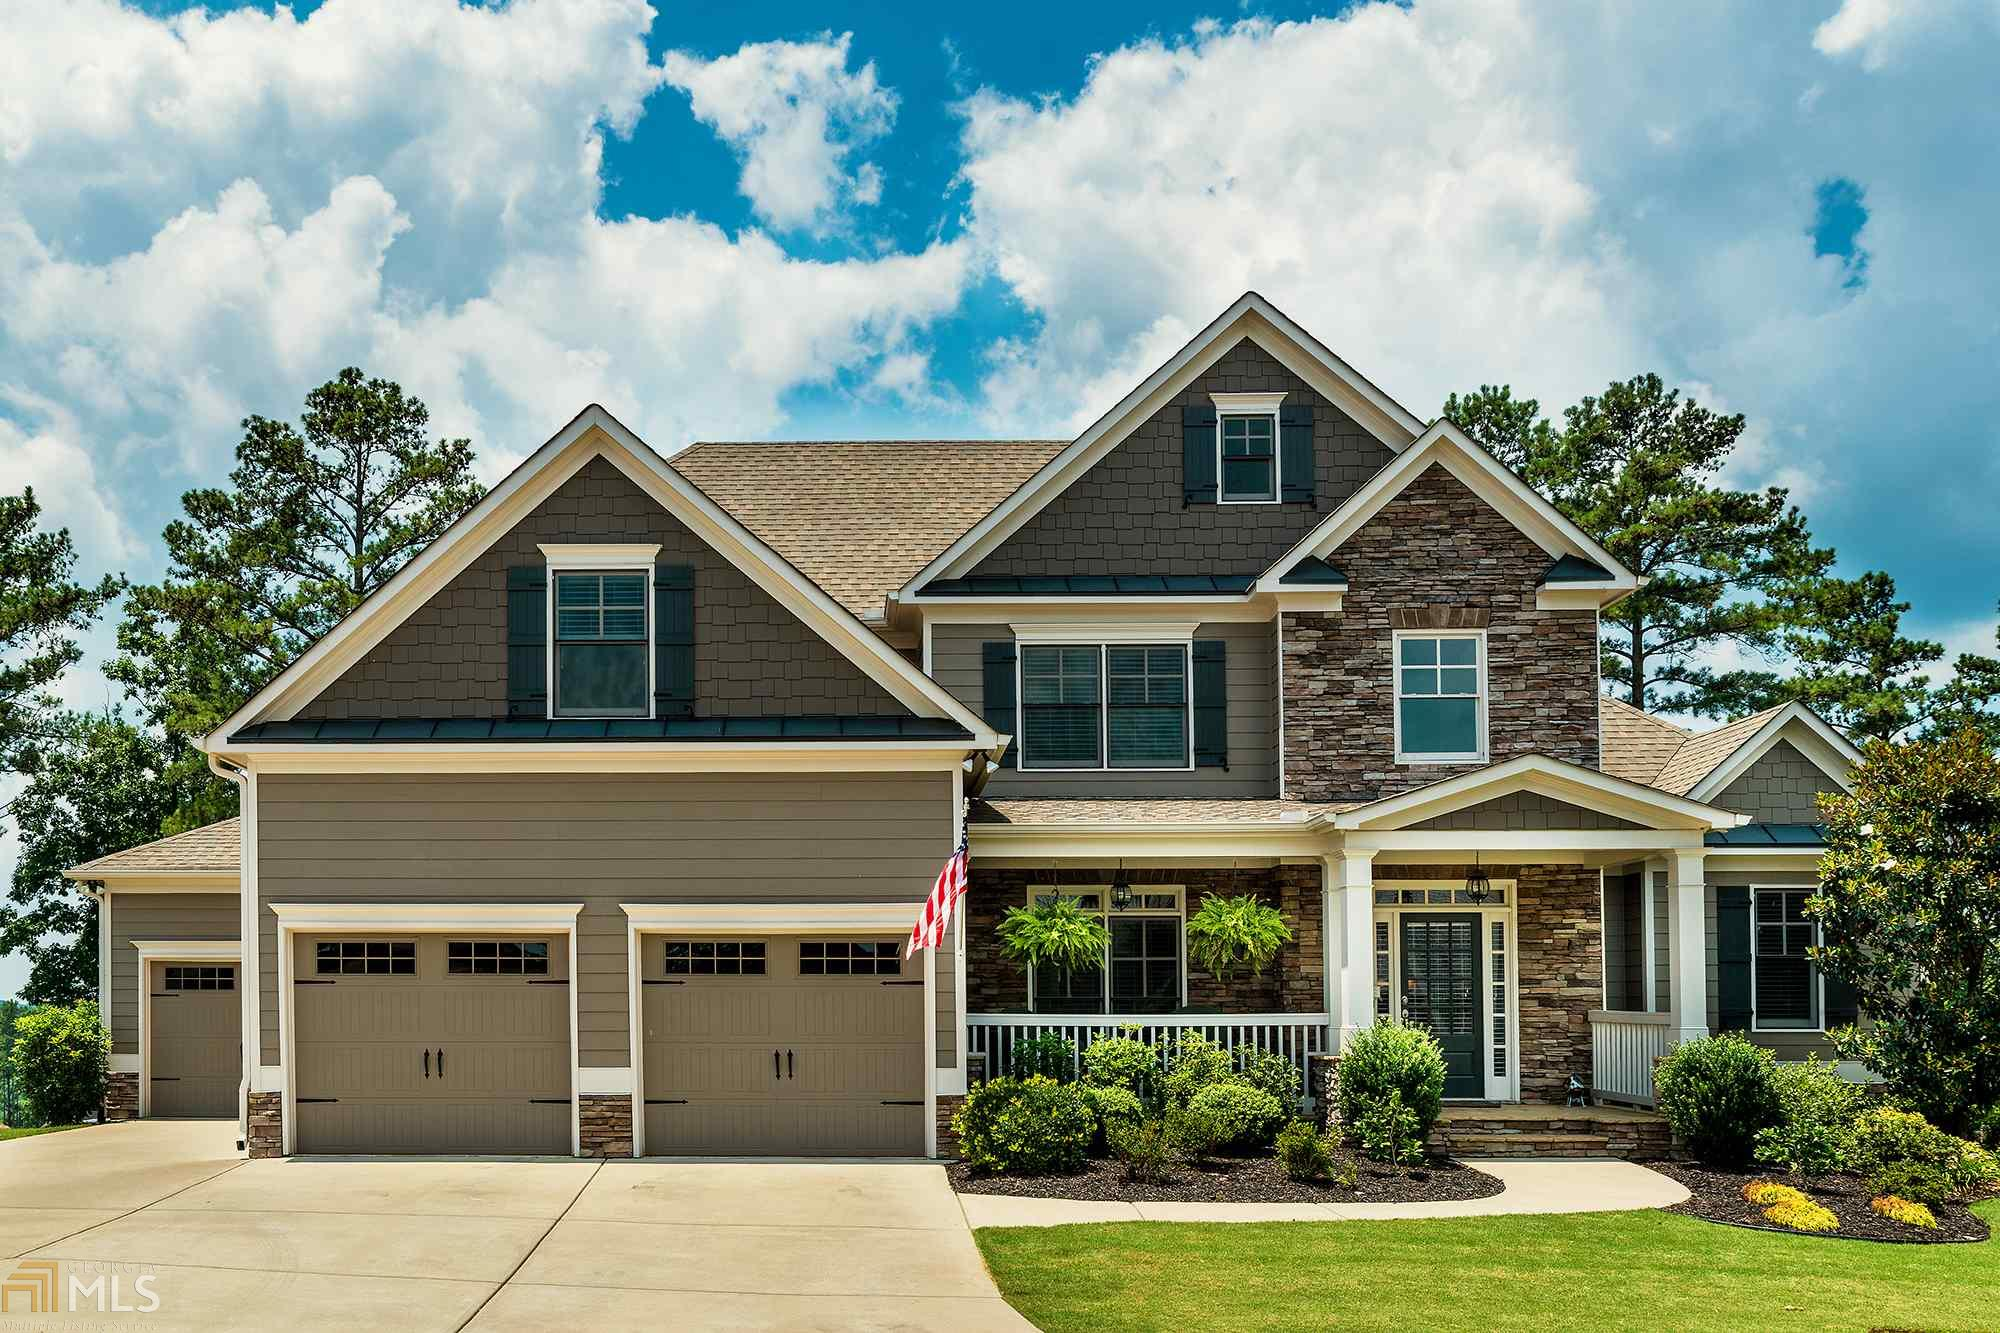 7 Bedroom Homes For Sale In Georgia 28 Images 7 Harry Potter Houses For Rent Real Estate 101